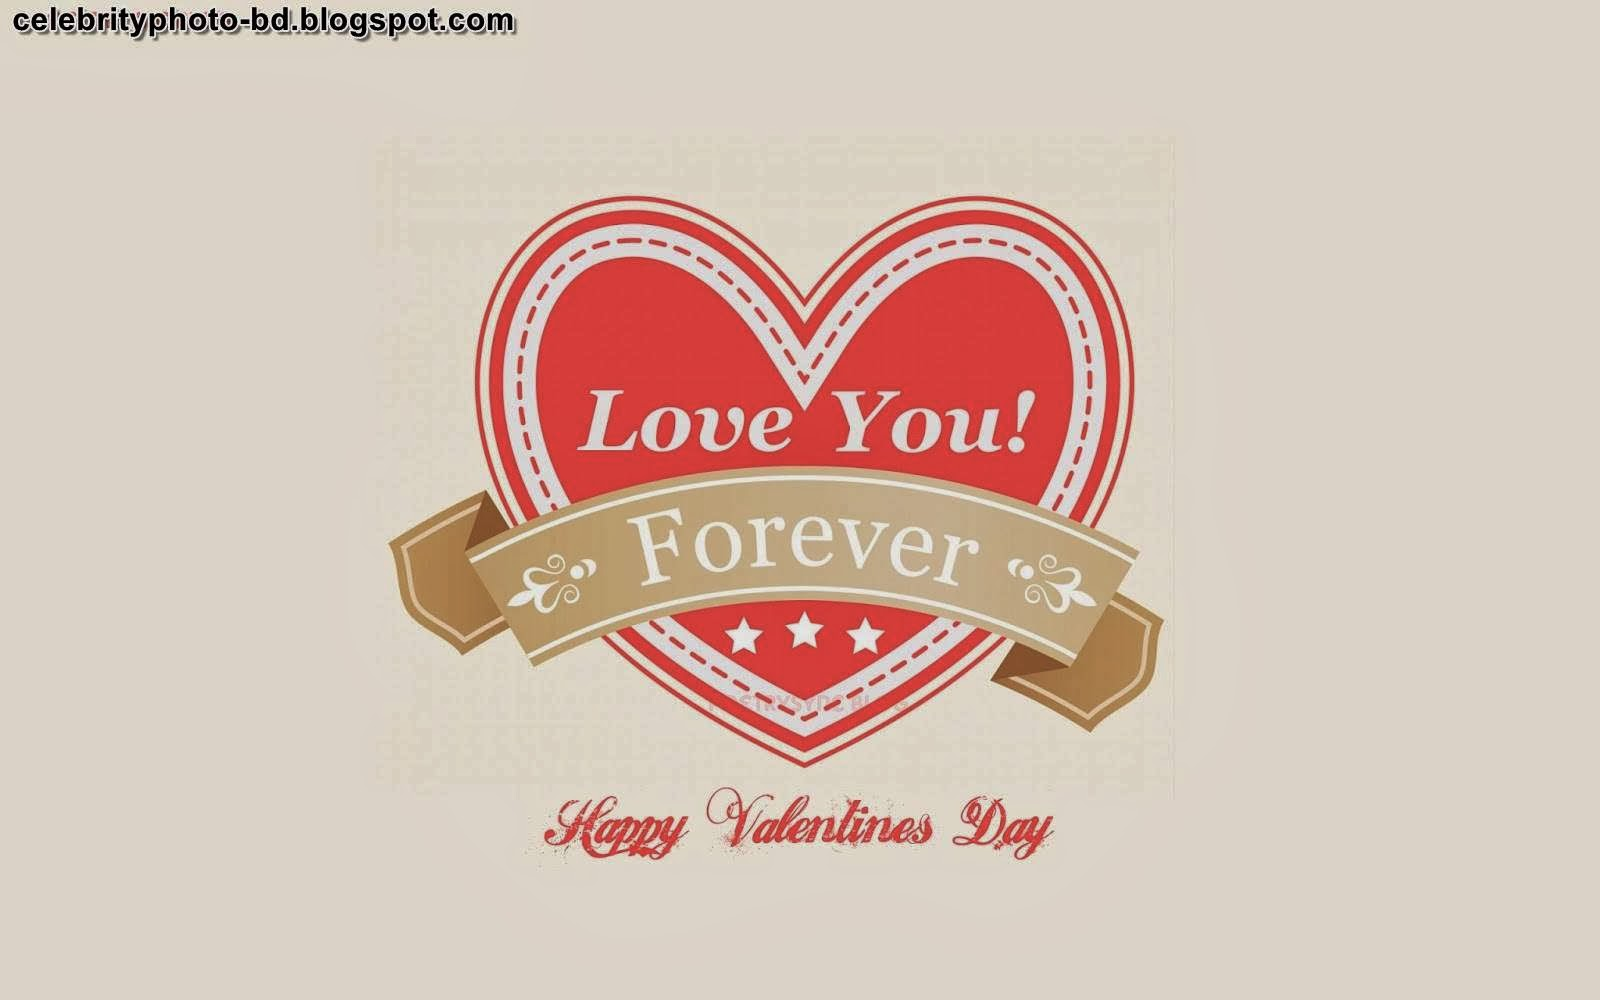 Valentines+Day+Latest+Lovely+Hearts+HD+Wallpapers+and+Wishes+Image+Cards+2014007